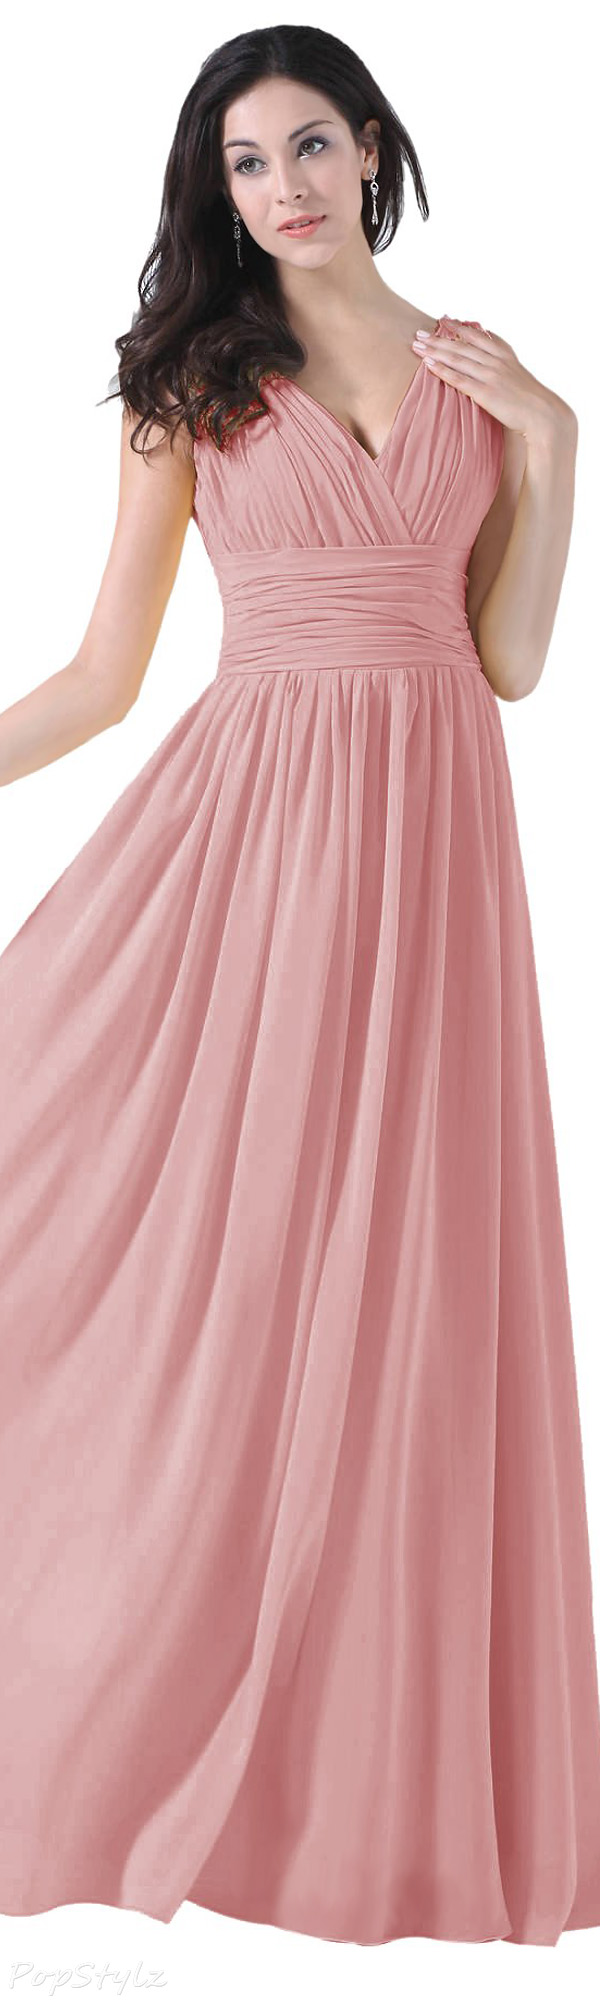 Diyouth V-Neck Long Flowing Evening Gown